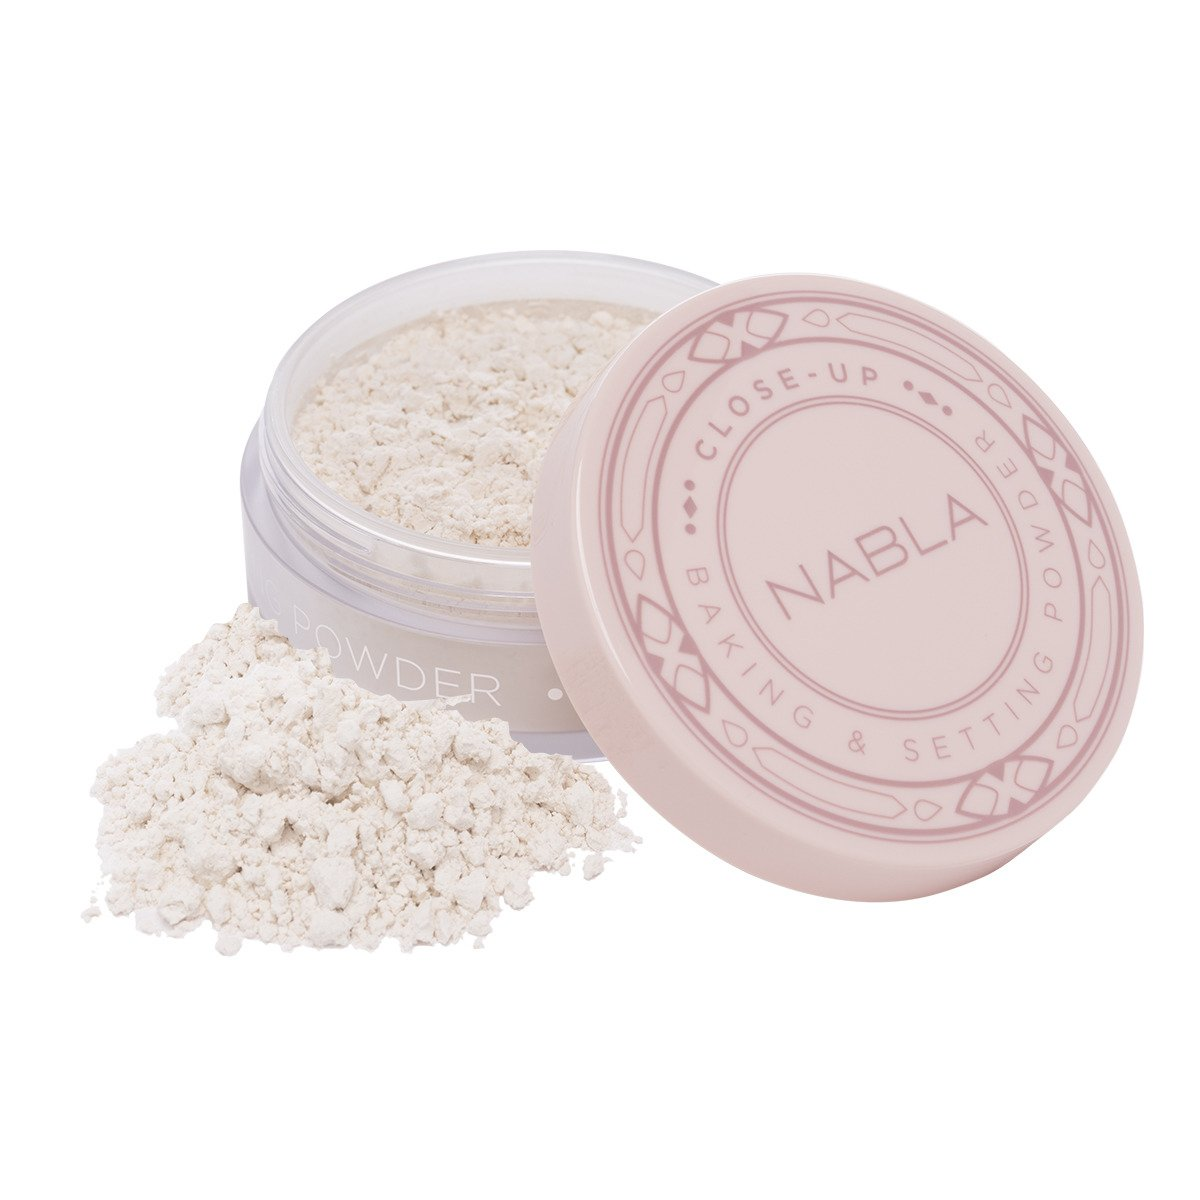 Puder sypki NABLA CLOSE-UP BAKING&SETTING POWDER